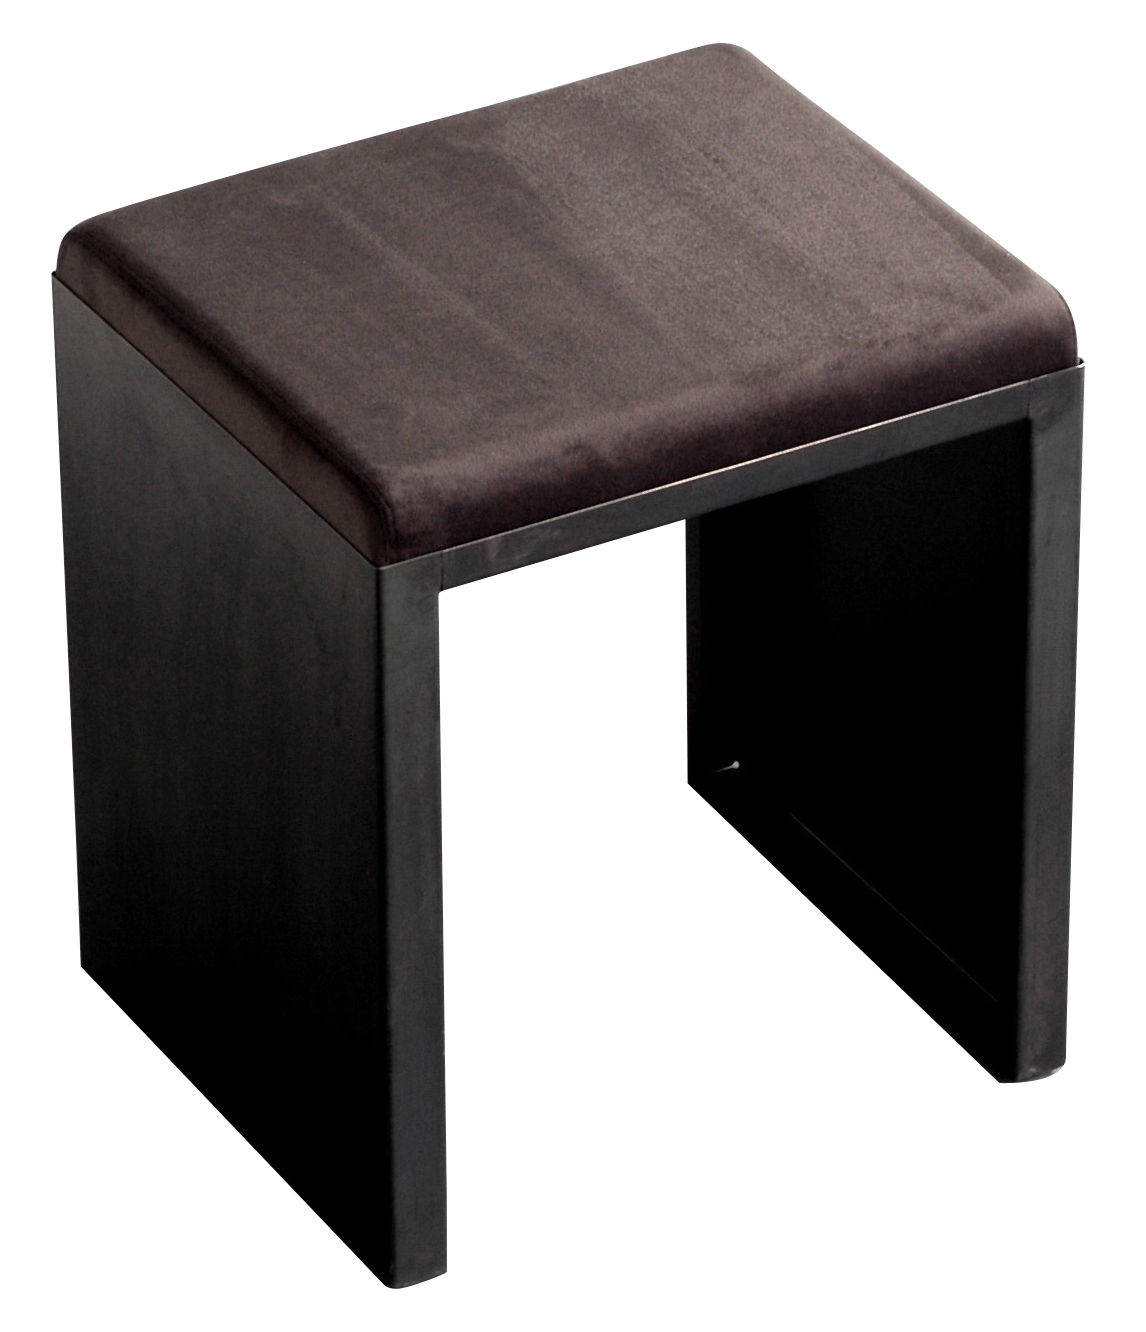 Furniture - Stools - Irony Stool by Zeus - H 48 cm - Leather, Phosphated steel